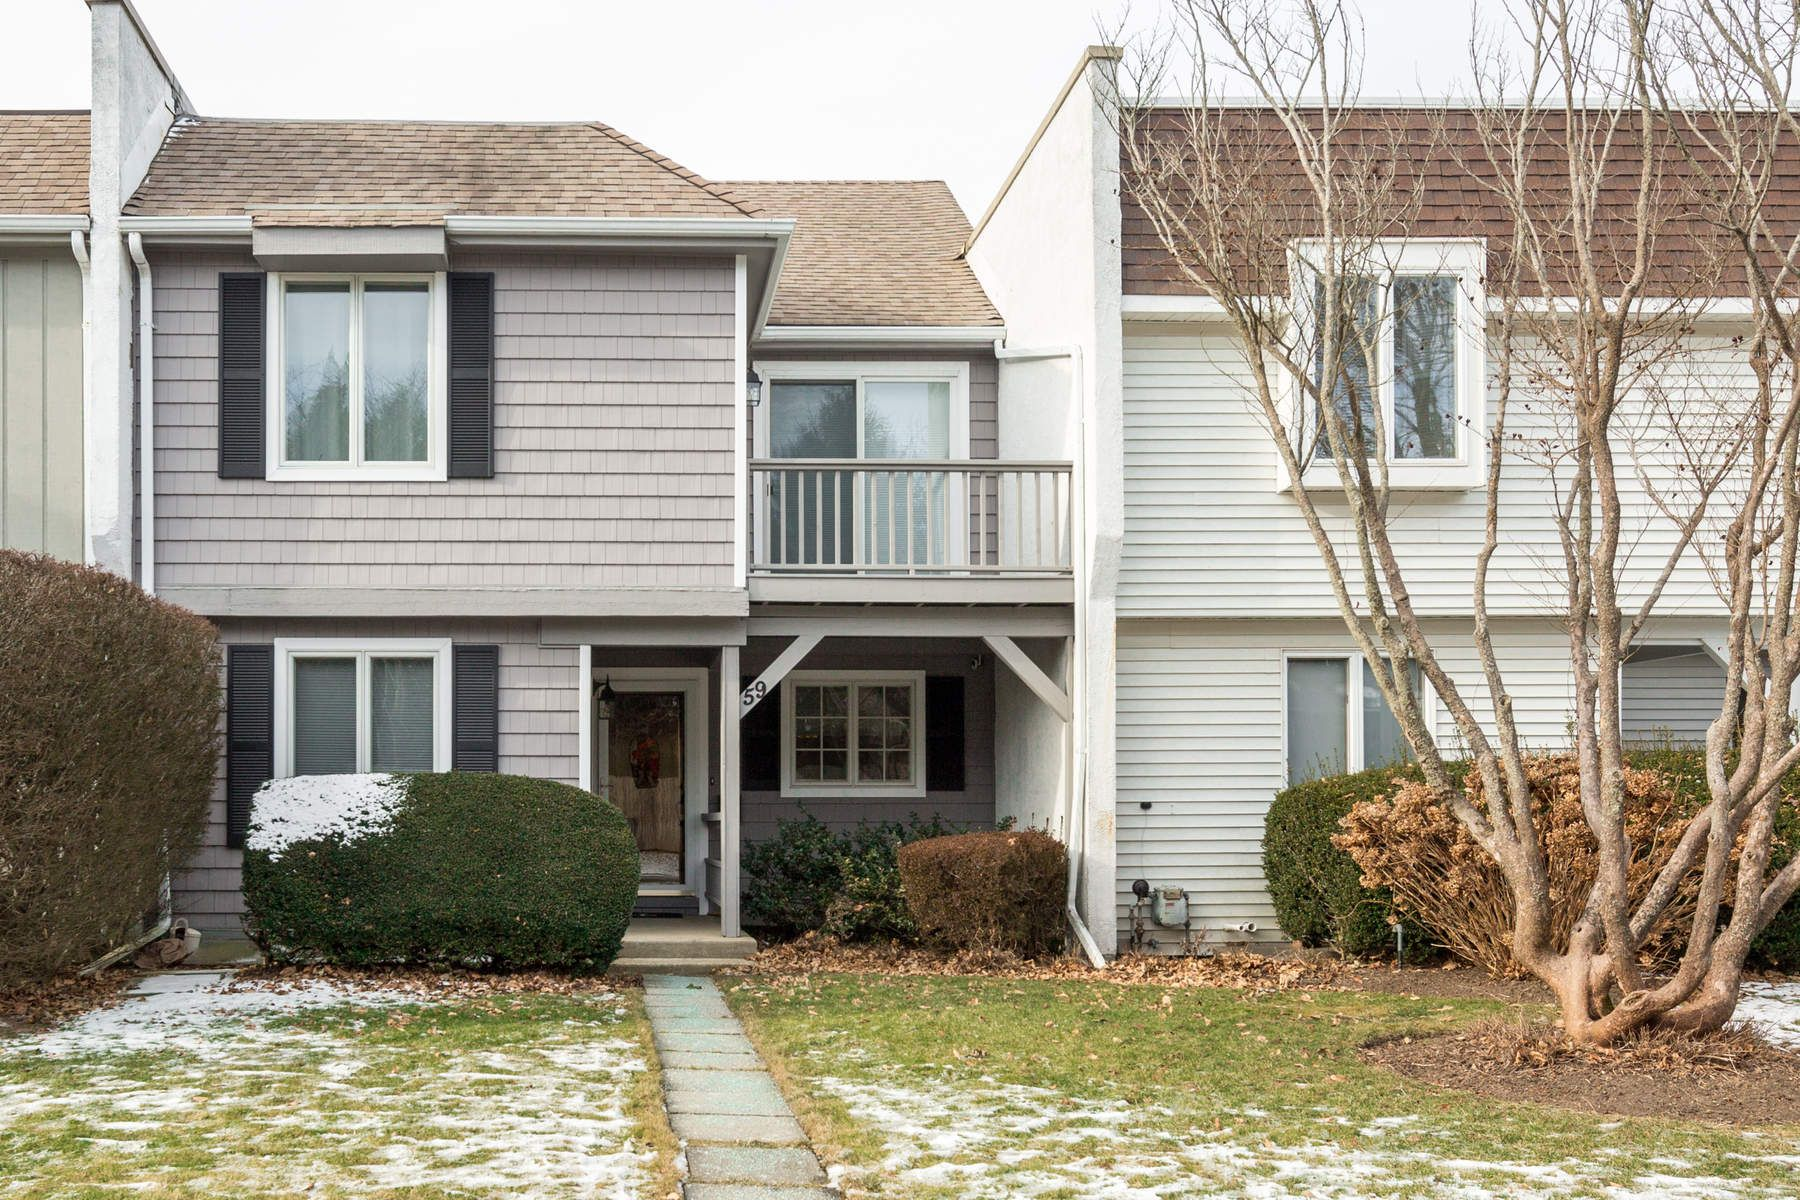 Townhouse for Rent at VILLAGE TOWNHOUSE 59 Gingerbread Lane East Hampton, New York 11937 United States